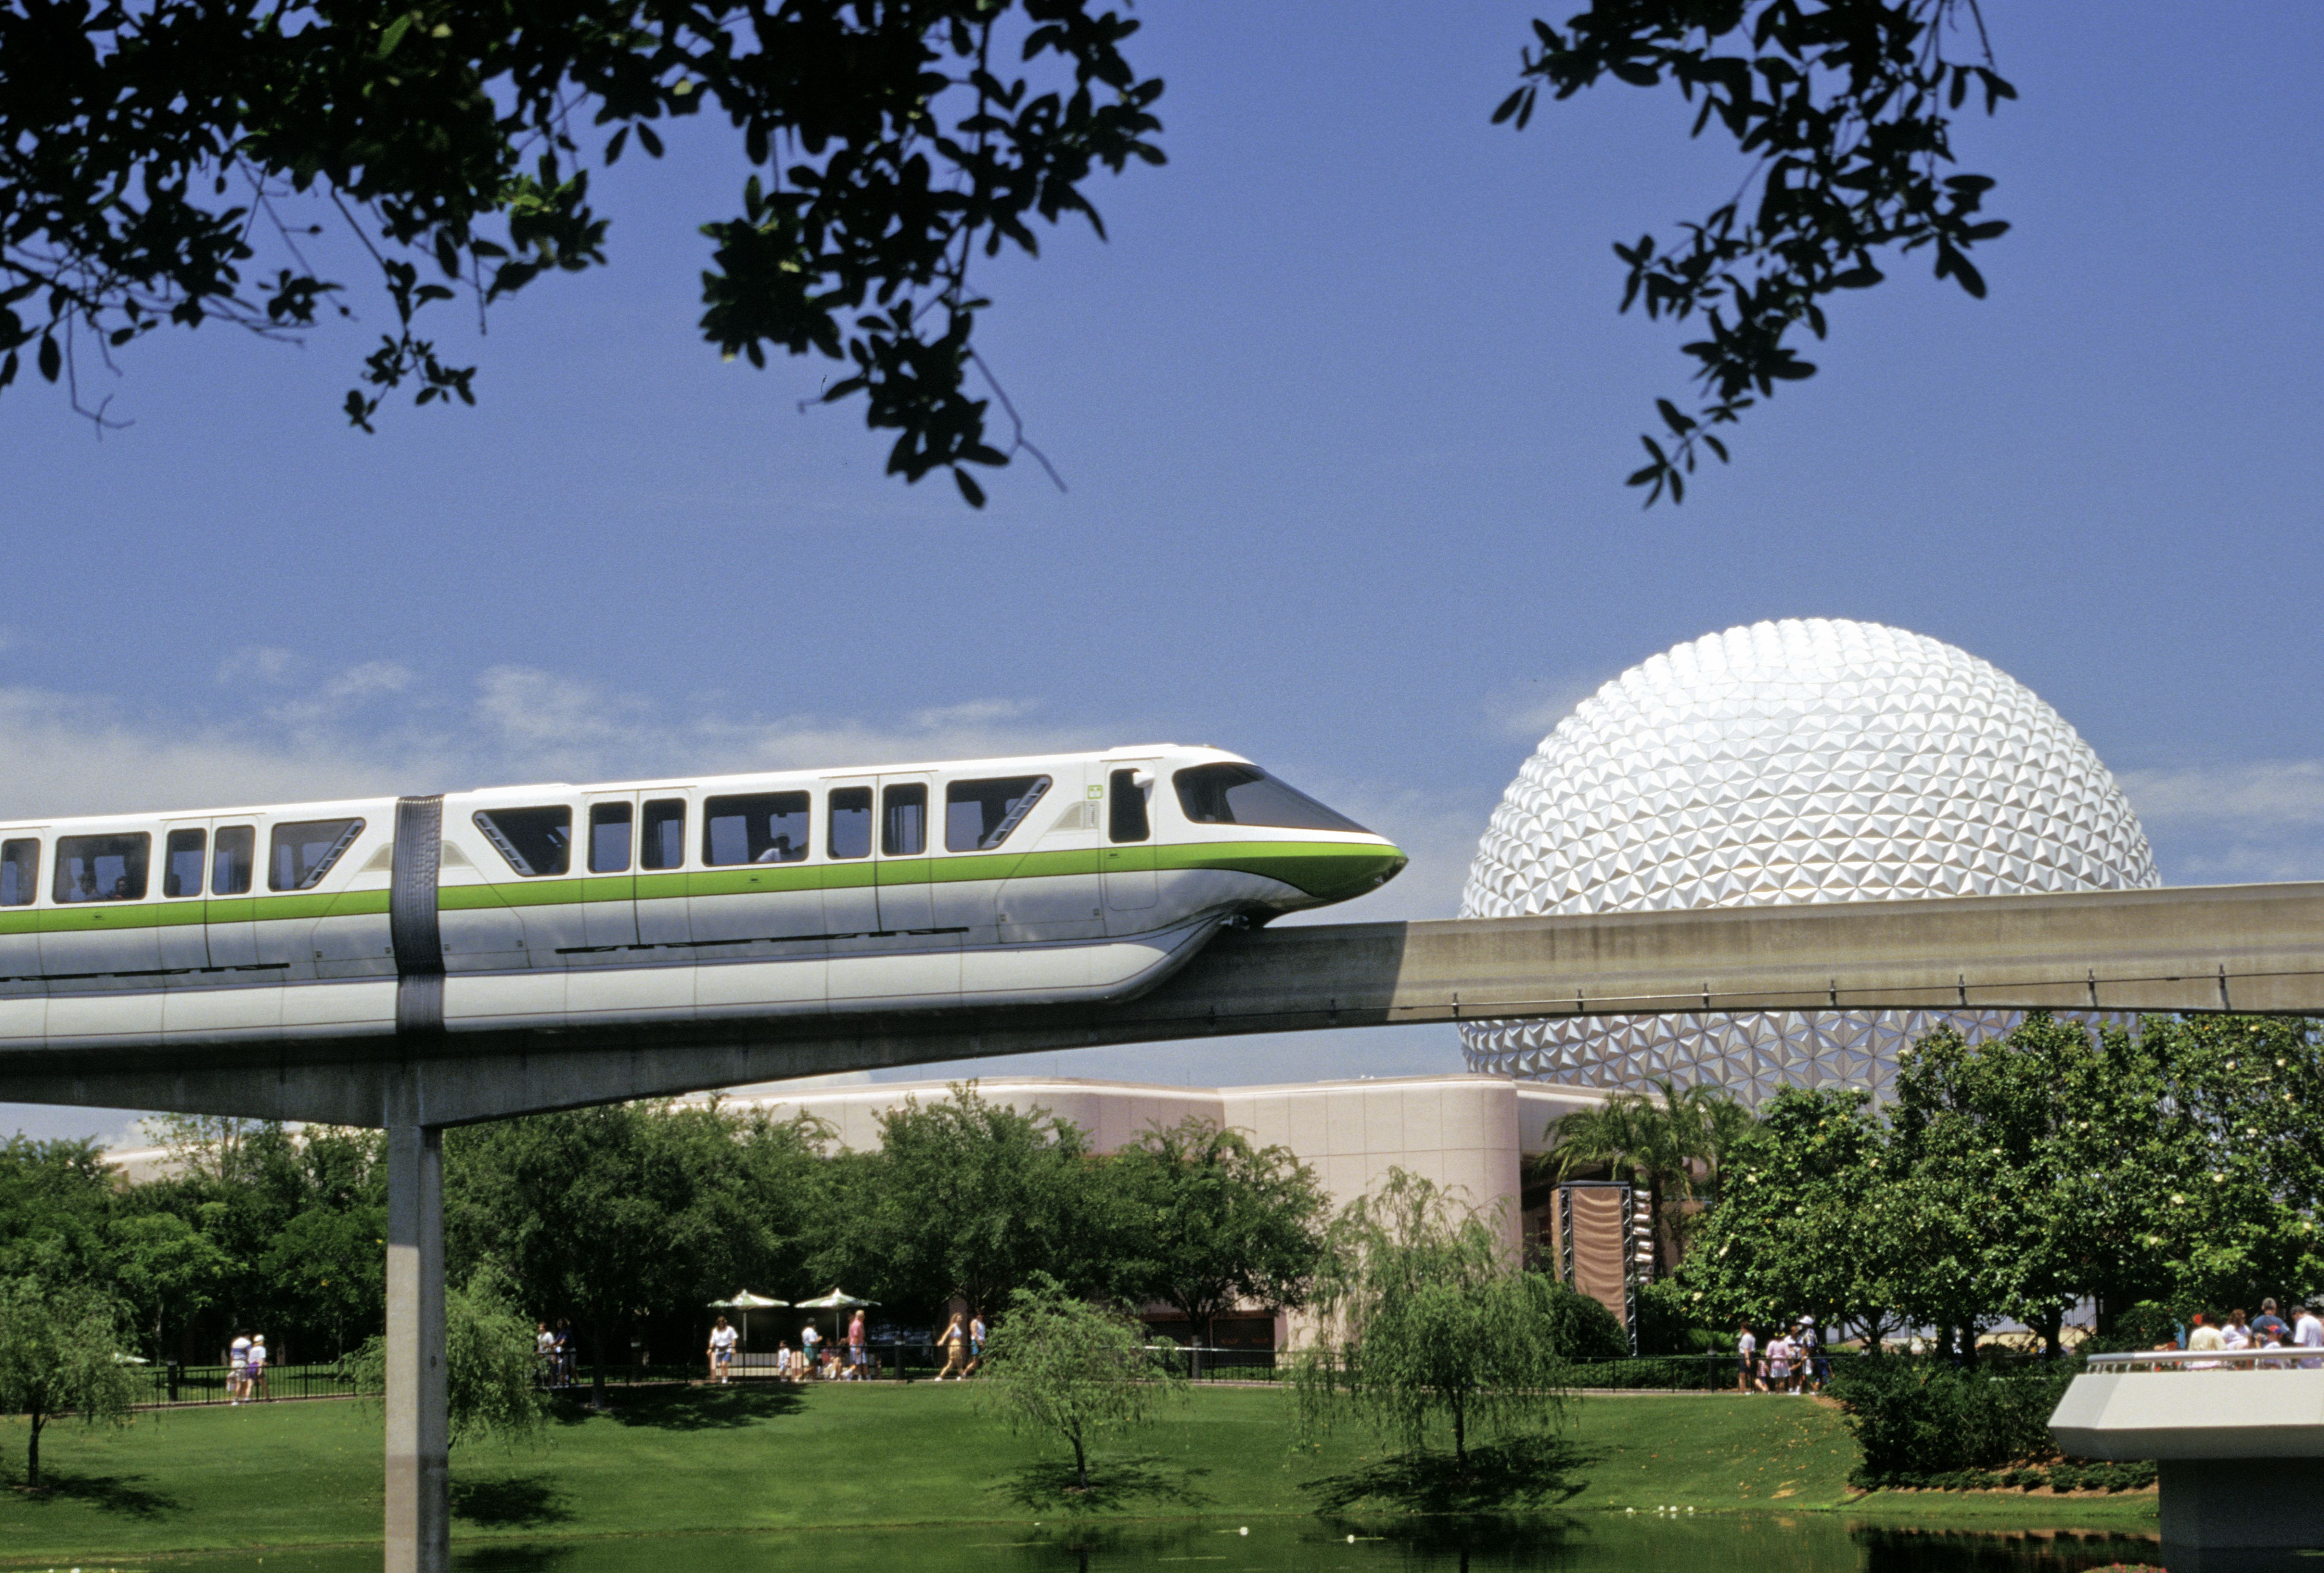 Disney World's Epcot theme park in Orlando, Fla.